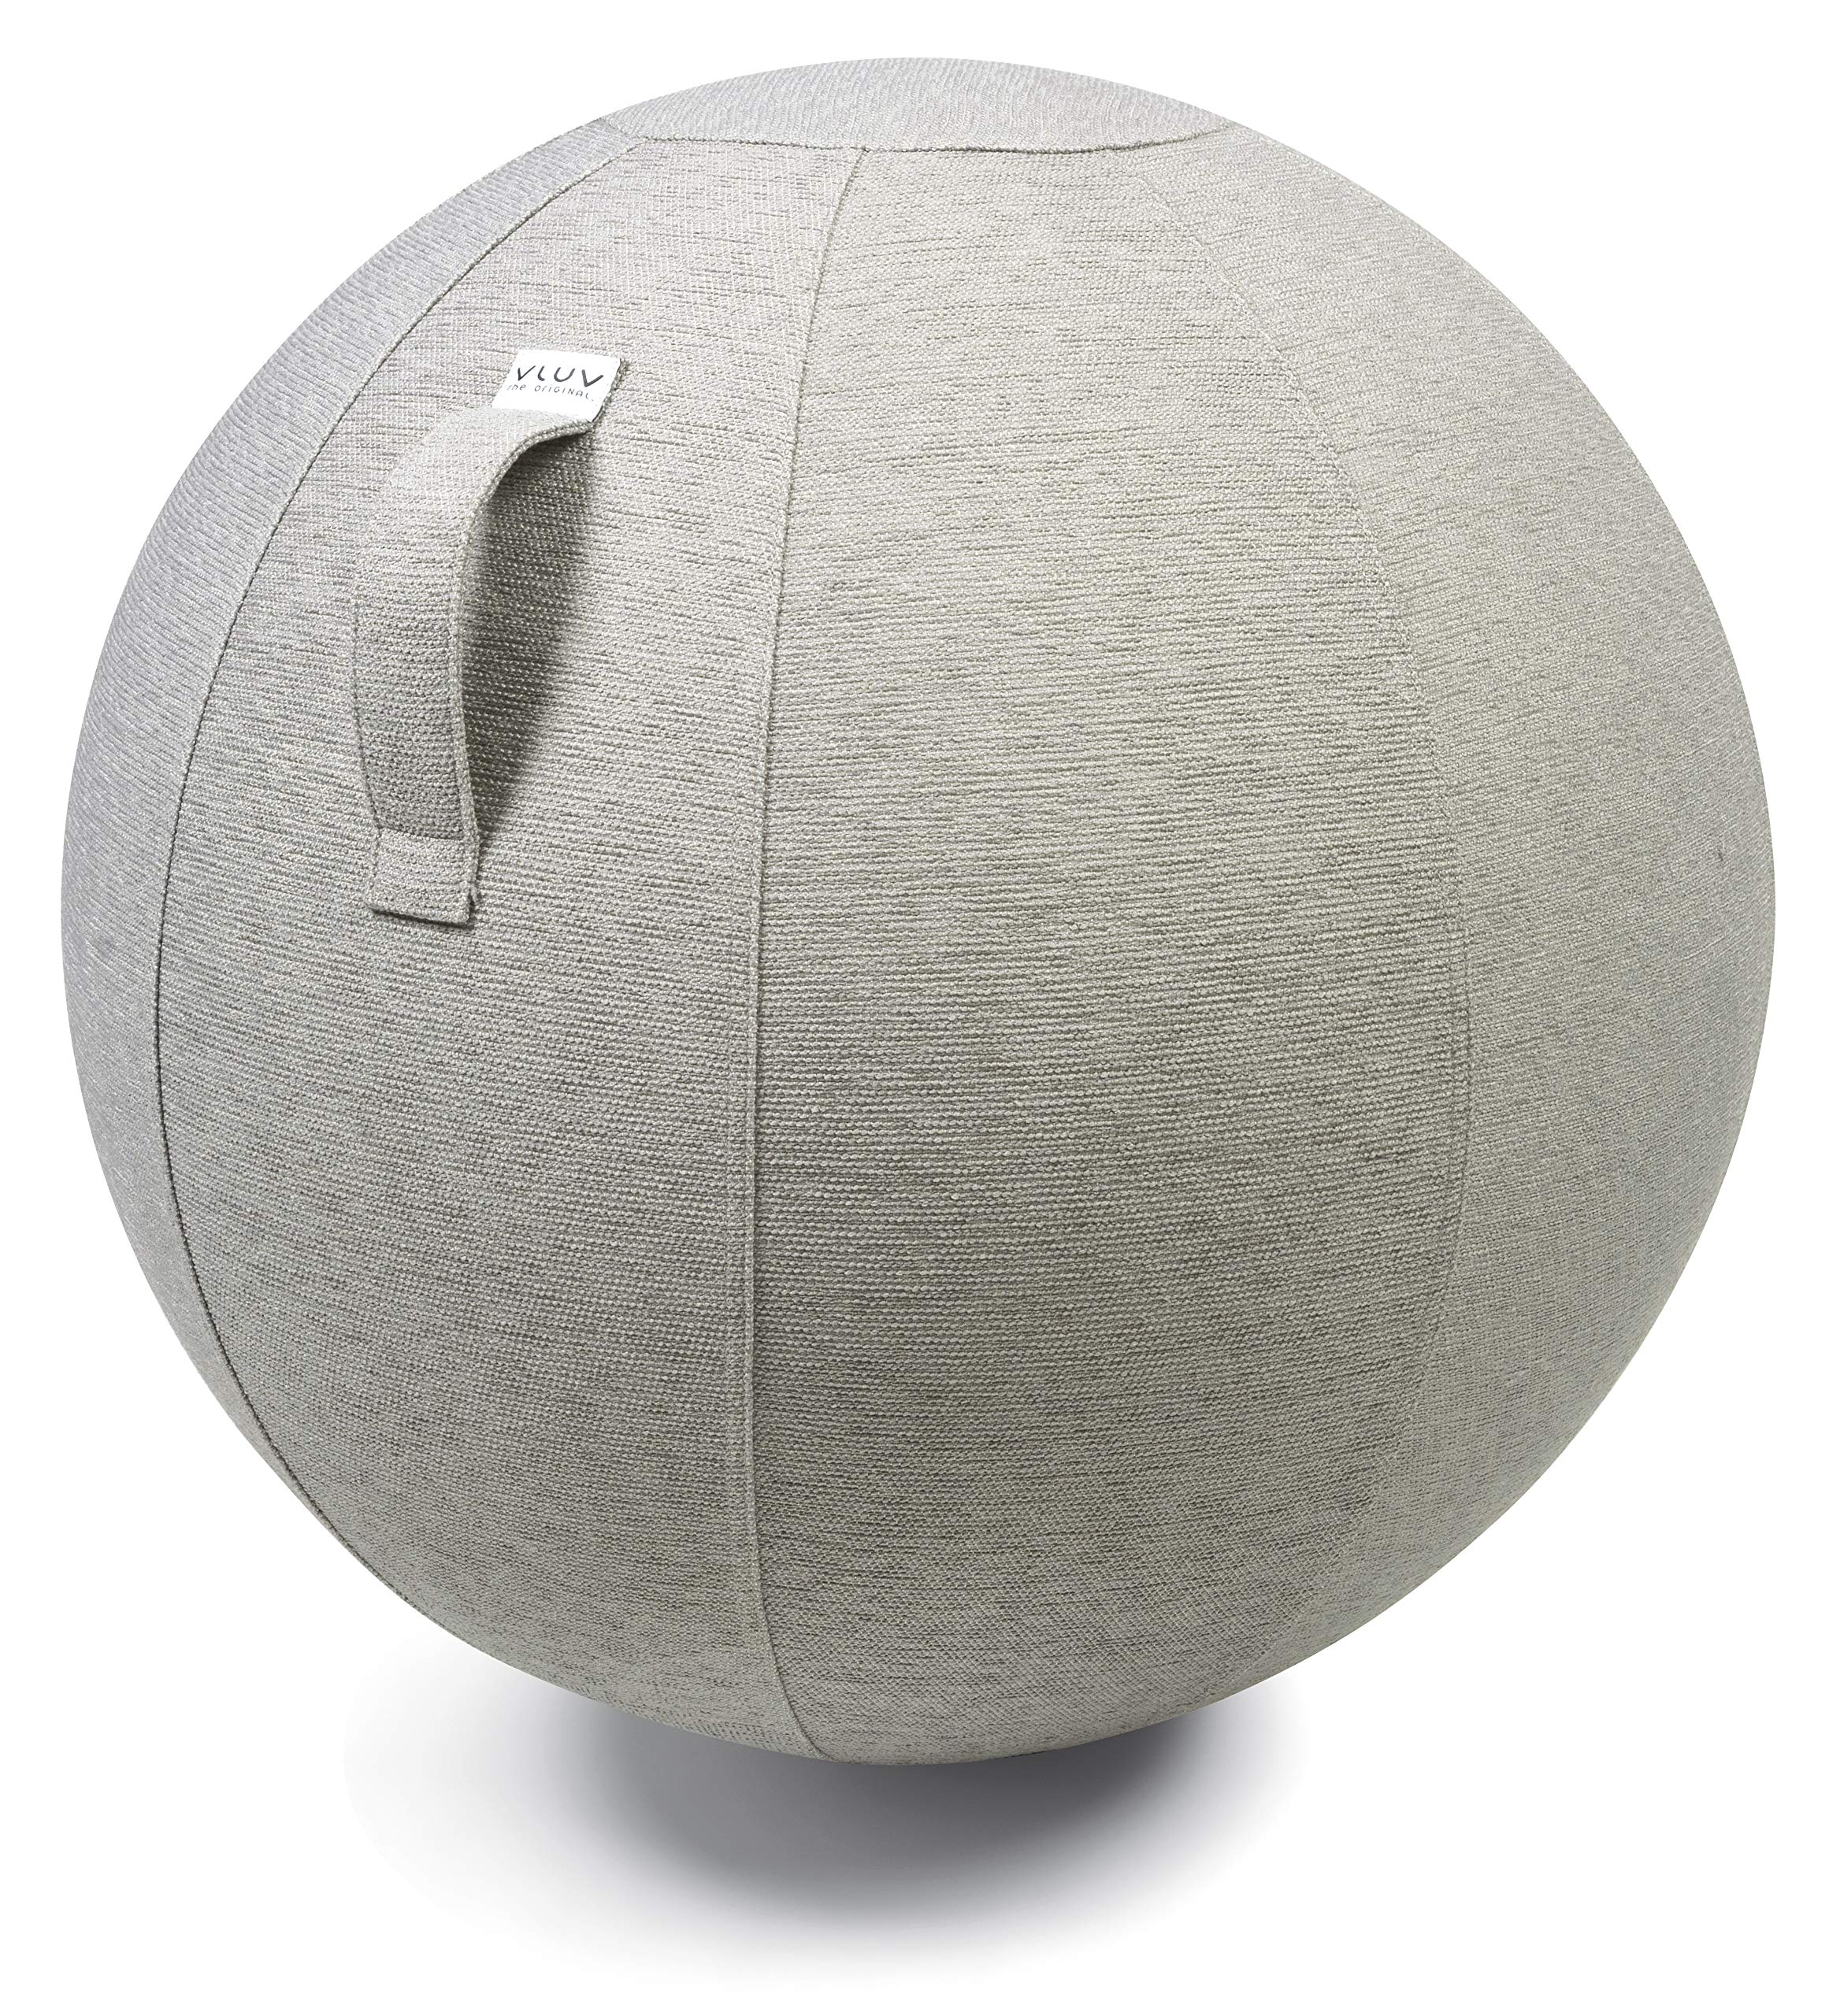 VLUV STOV Premium Quality Self-Standing Sitting Ball with Handle - Home or Office Chair and Exercise Ball for Yoga, Back Stretching, or Gym- Upholstery Fabric Stability Ball (Concrete, 29.5'') by VLUV